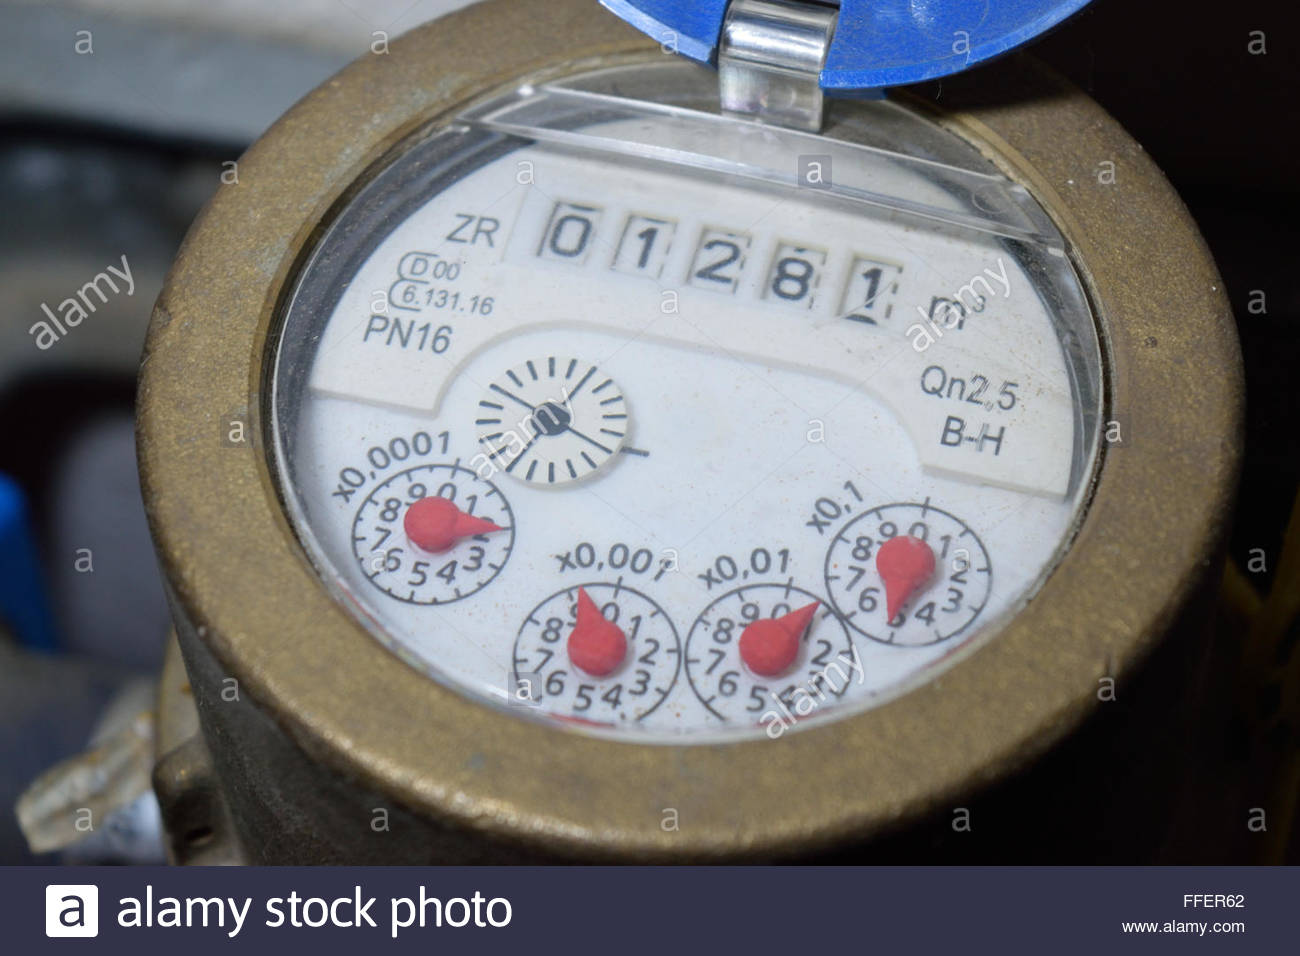 Water meter - Stock Image